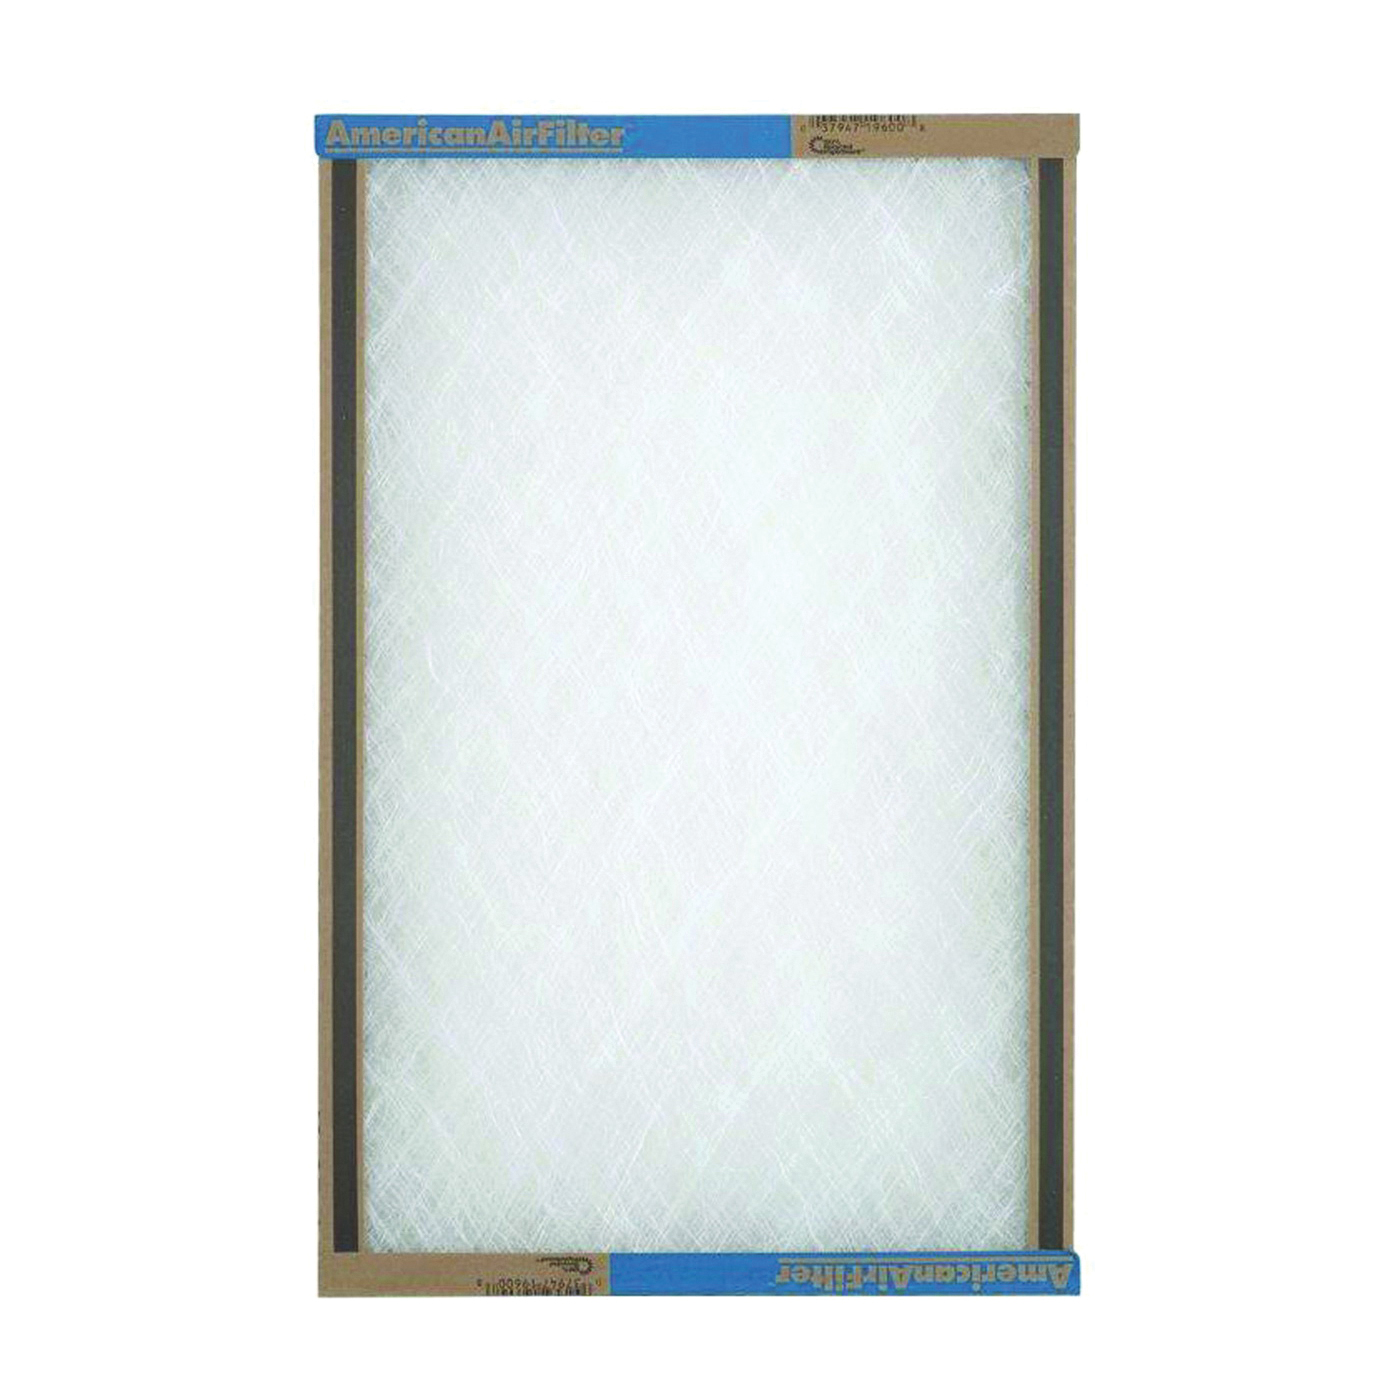 Picture of AAF 118201 Panel Filter, 20 in L, 18 in W, Chipboard Frame